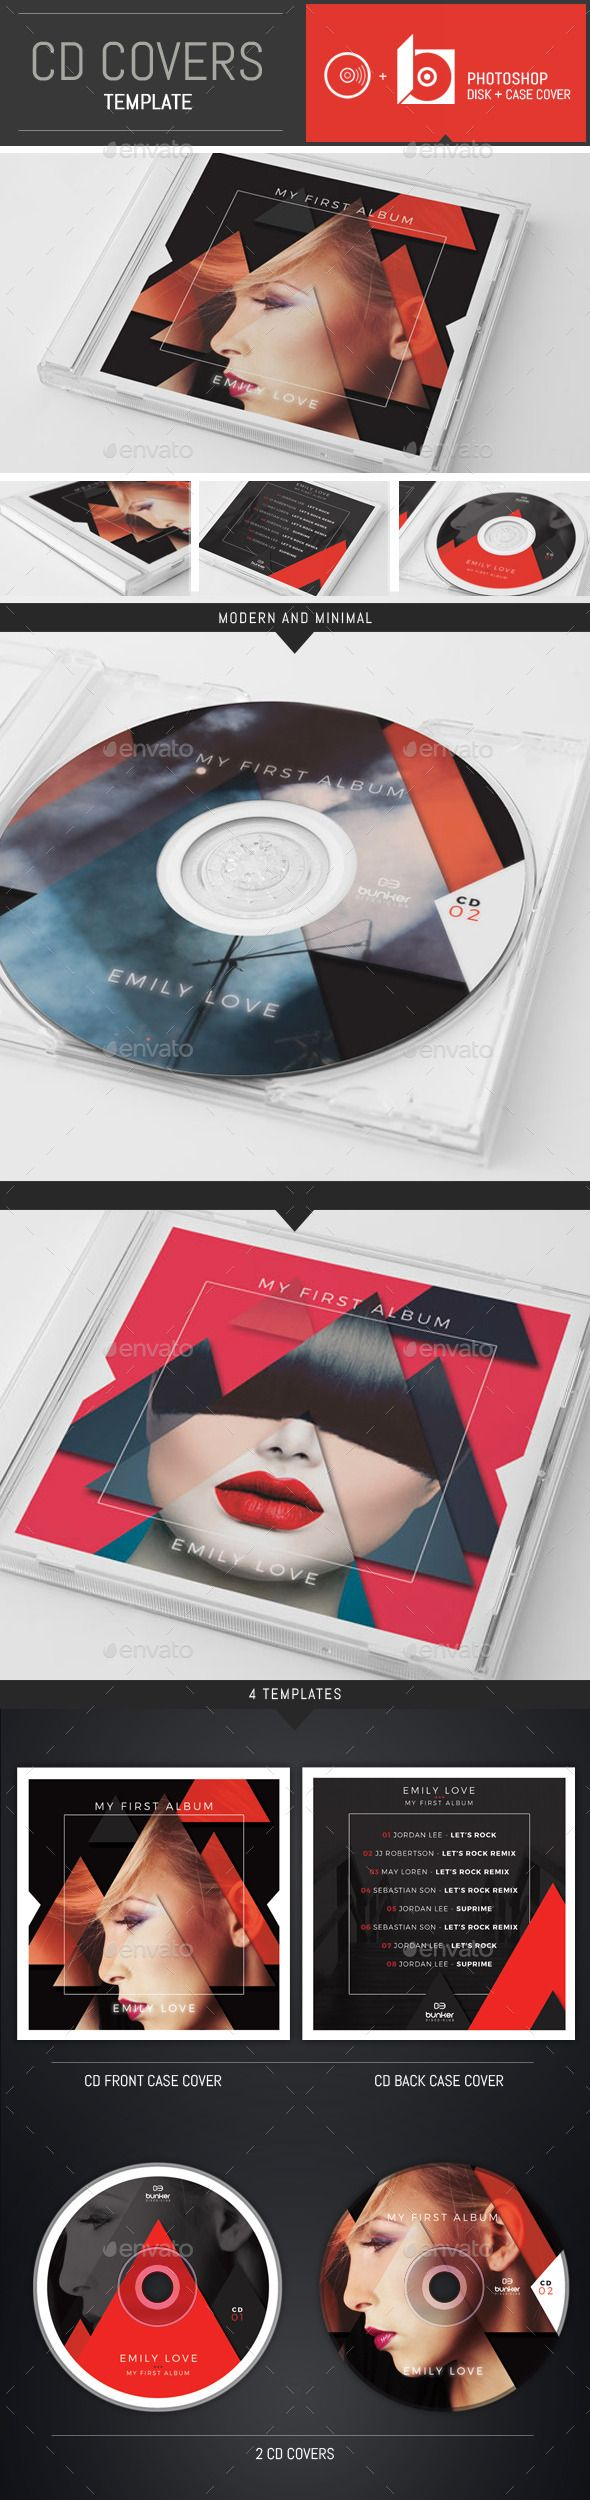 DJ Music Triangle CD Cover Template PSD. Download here: http://graphicriver.net/item/dj-music-triangle-cd-cover-template/12836473?ref=ksioks